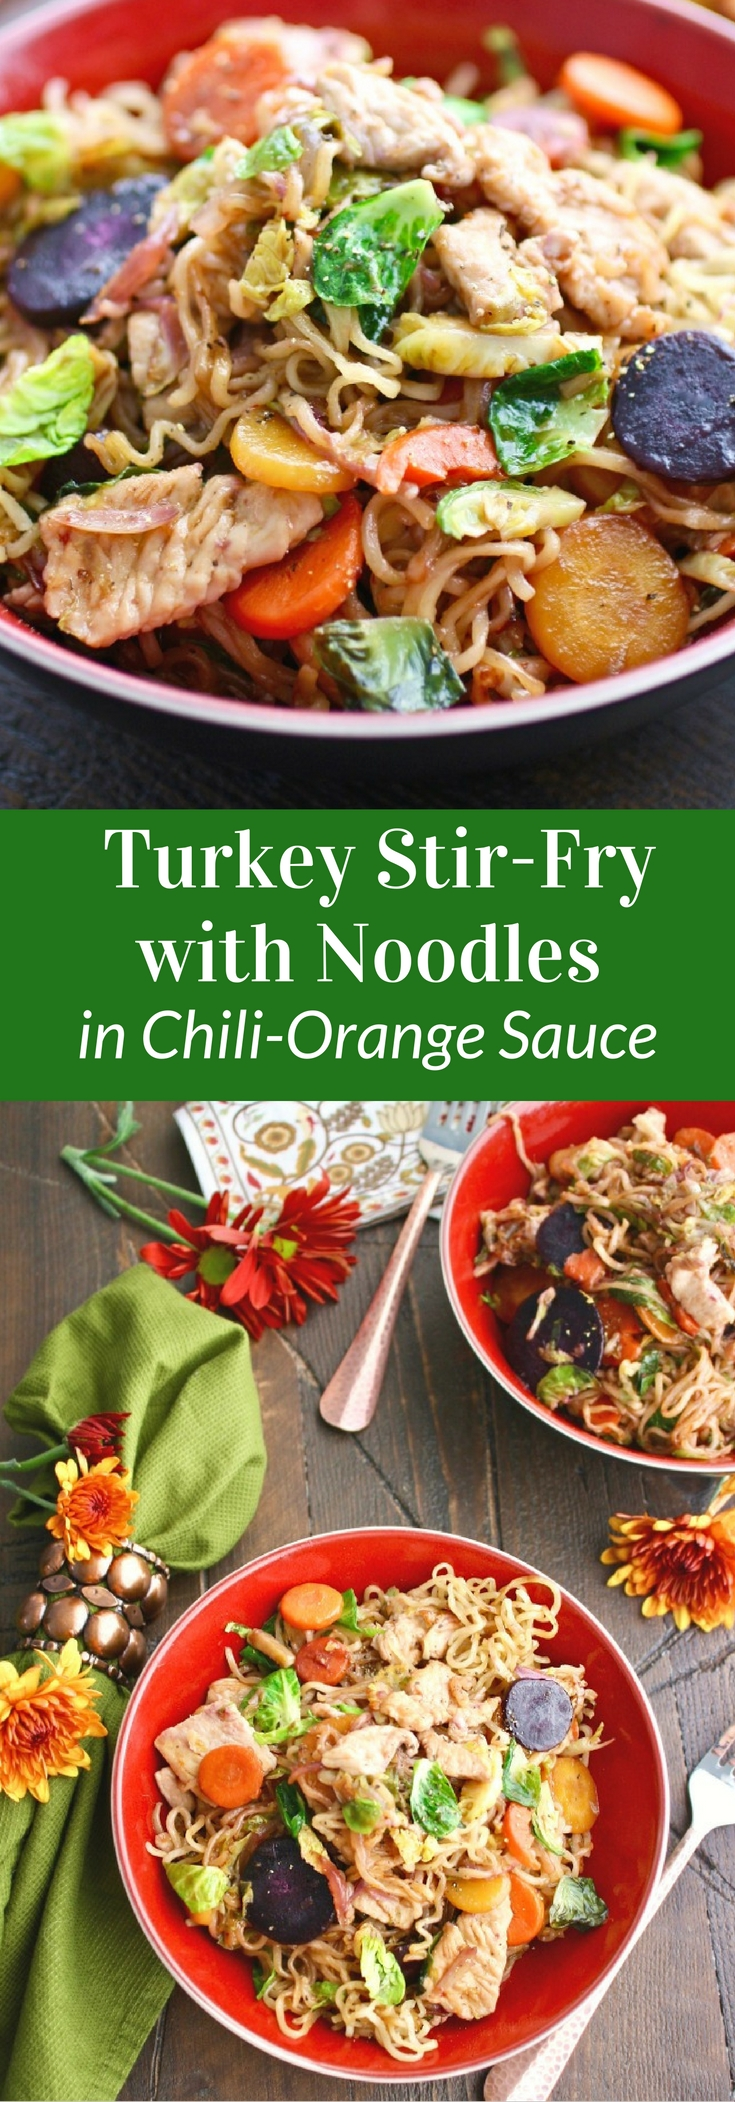 Turkey Stir-Fry with Noodles in Chili-Orange Sauce is a great way to add a twist to Thanksgiving Dinner!